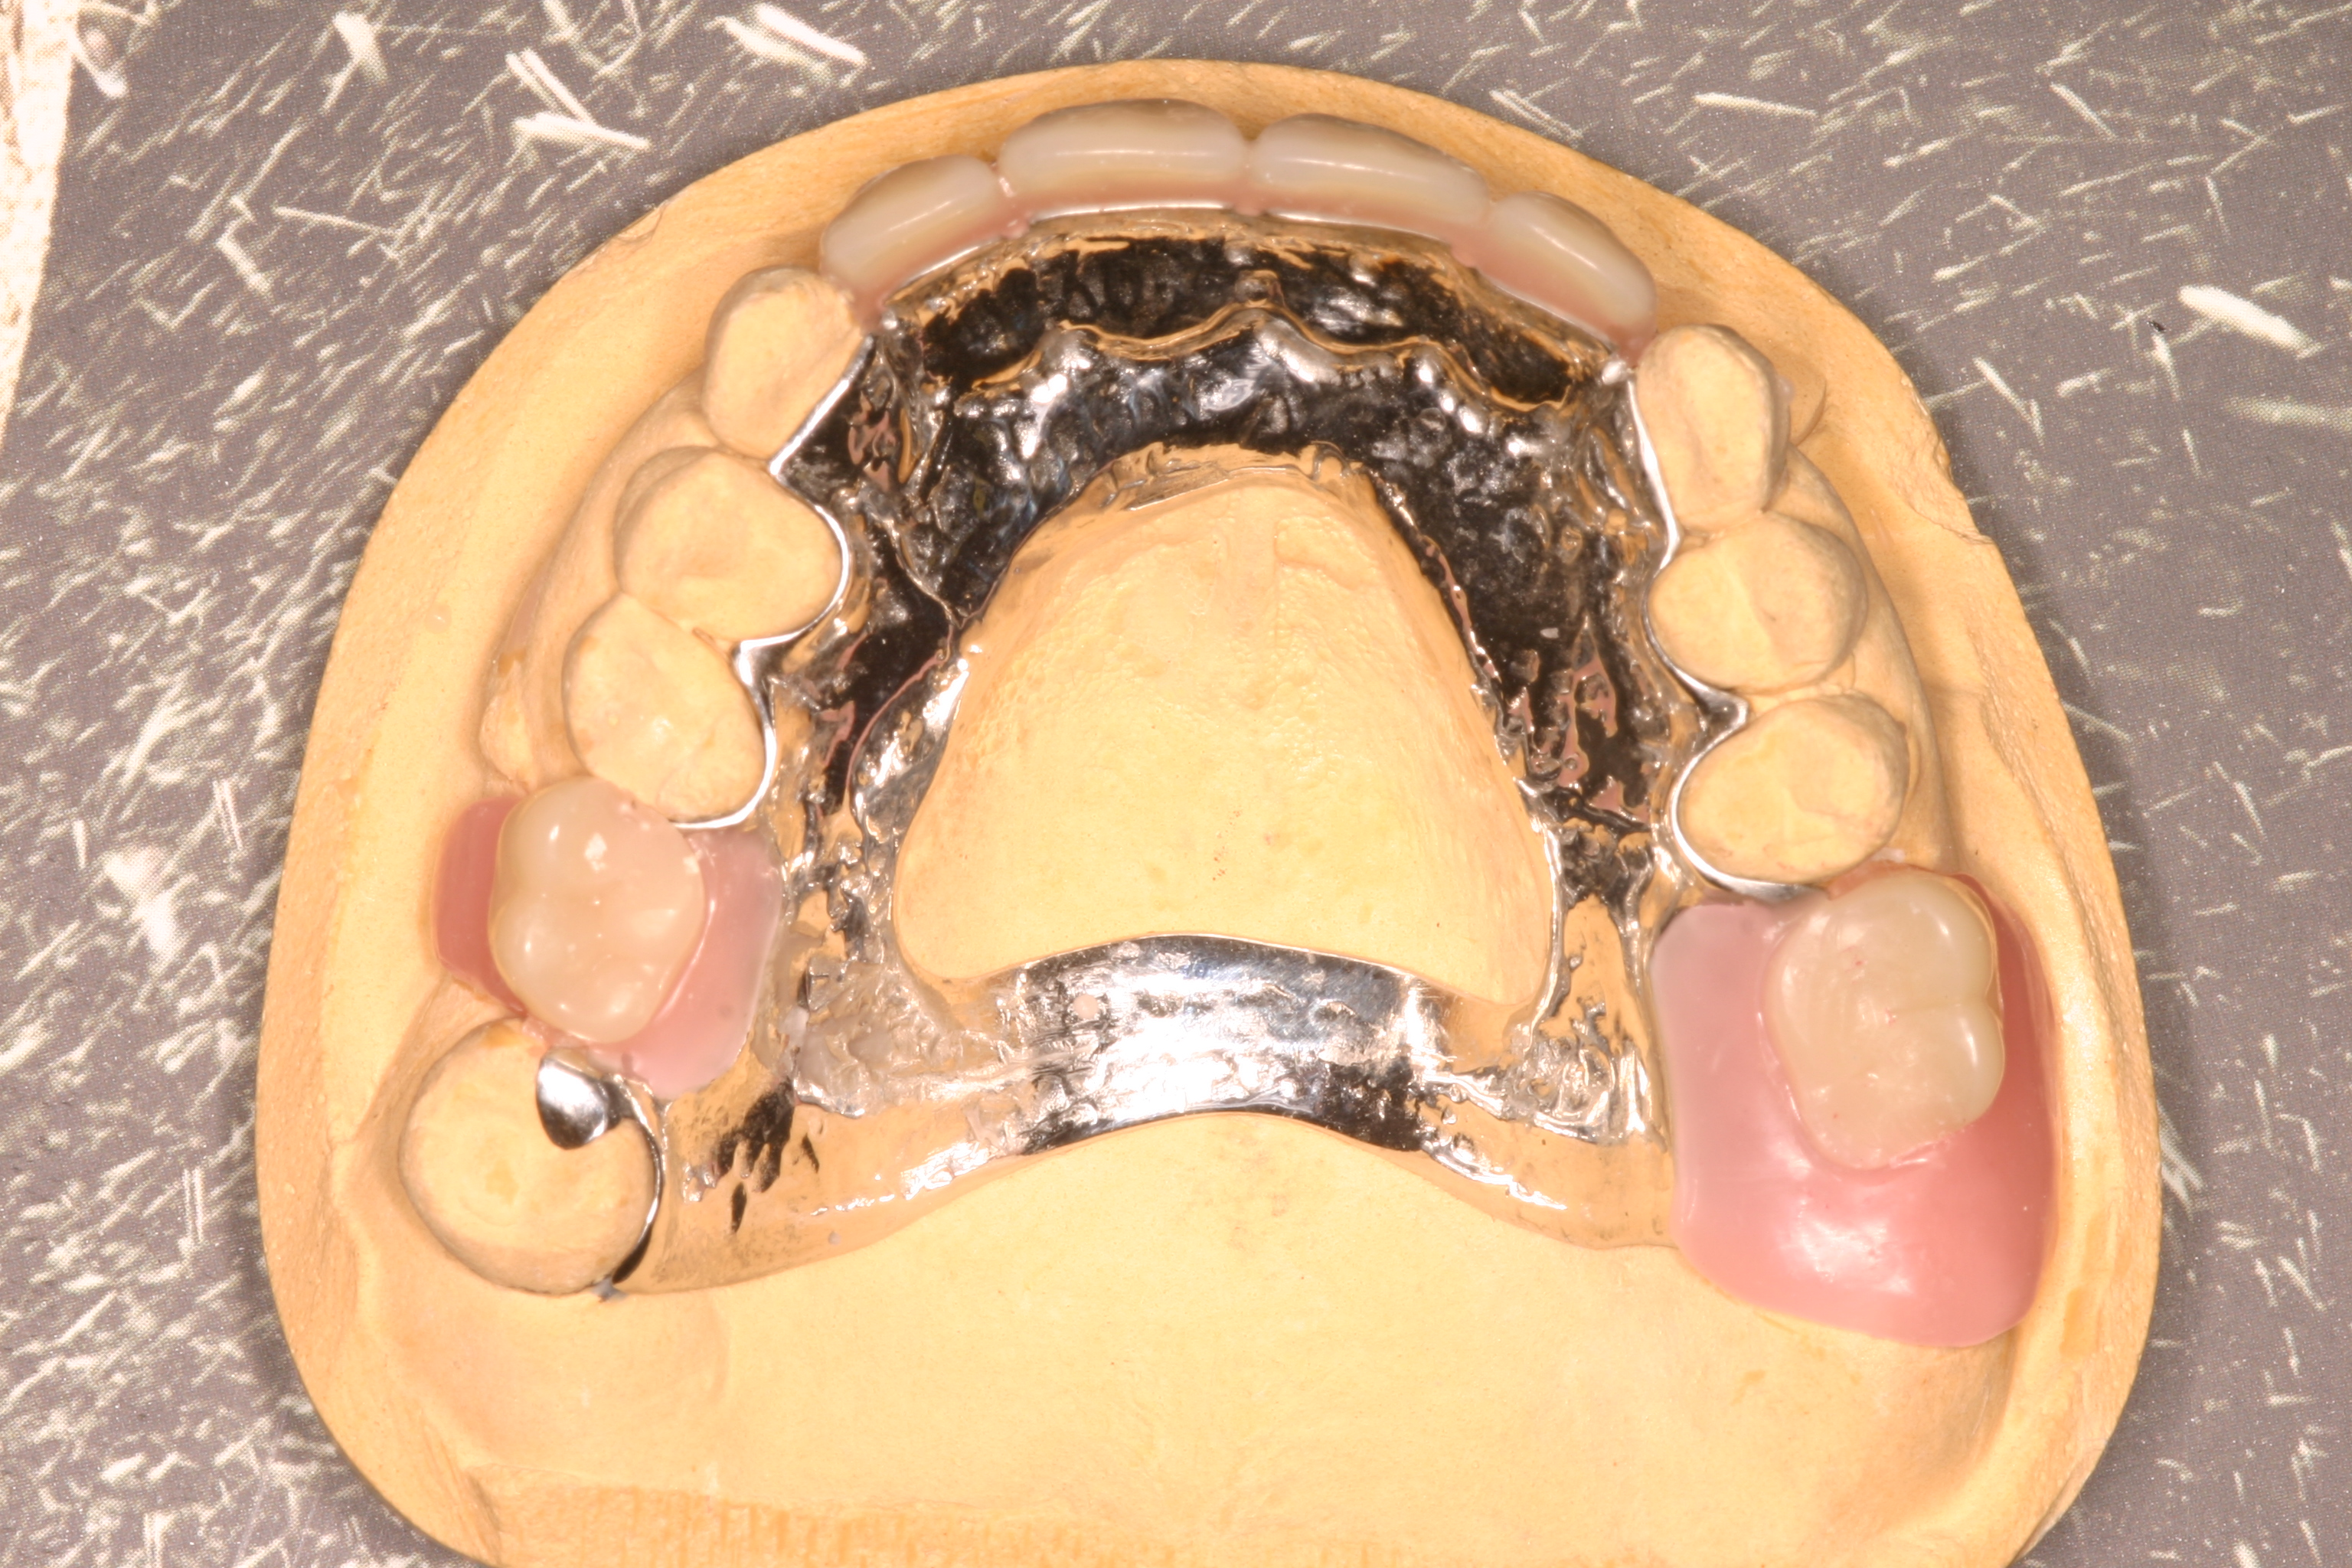 removable partial denture Typically, a removable partial denture is made of a metal framework with pink plastic to replace the gum tissue and plastic or resin denture teeth the number of missing teeth and their location will affect the comfort and stability of the removable partial denture.